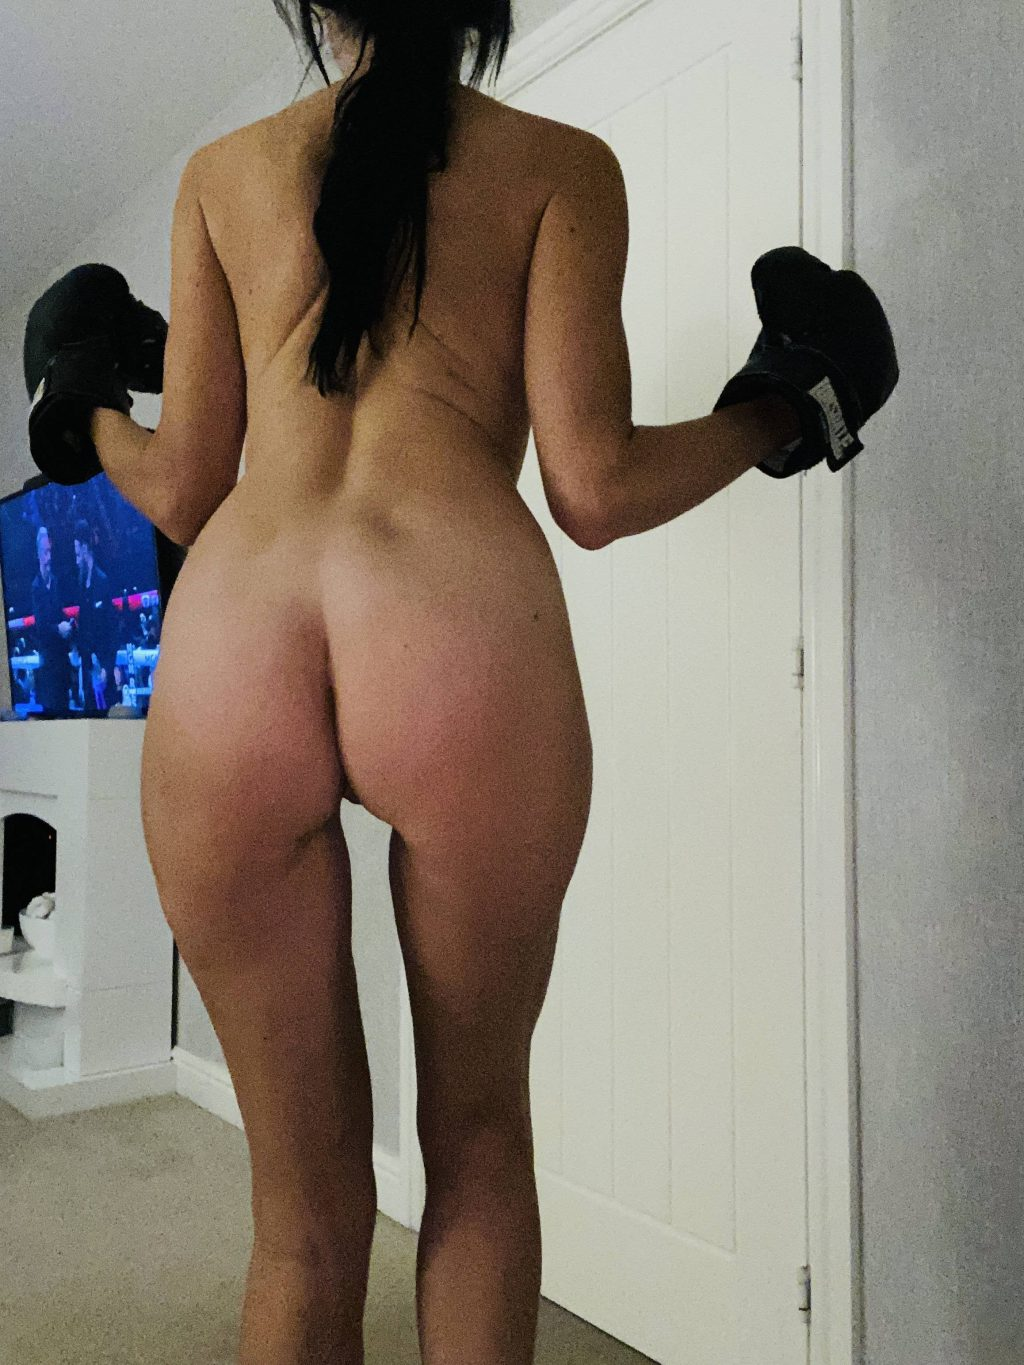 LET'S GET READY TO RUMBLE! [F]